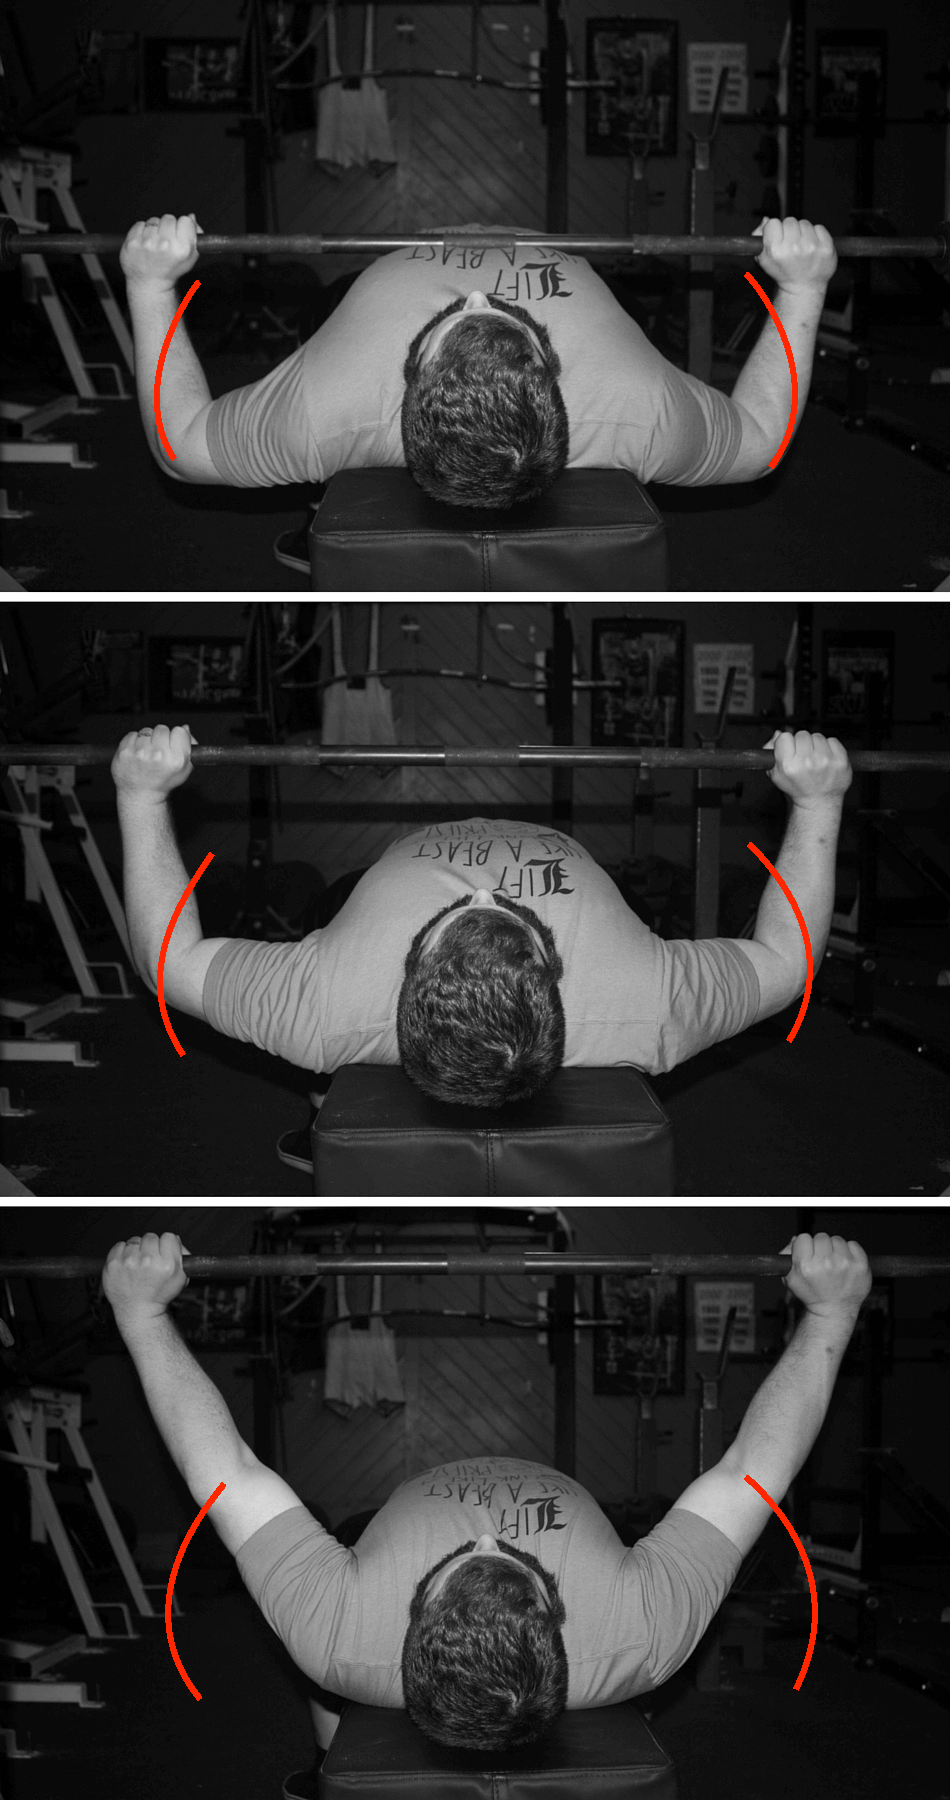 This Is The Path The Elbows Follow In The Bench Press. In The Second Pic